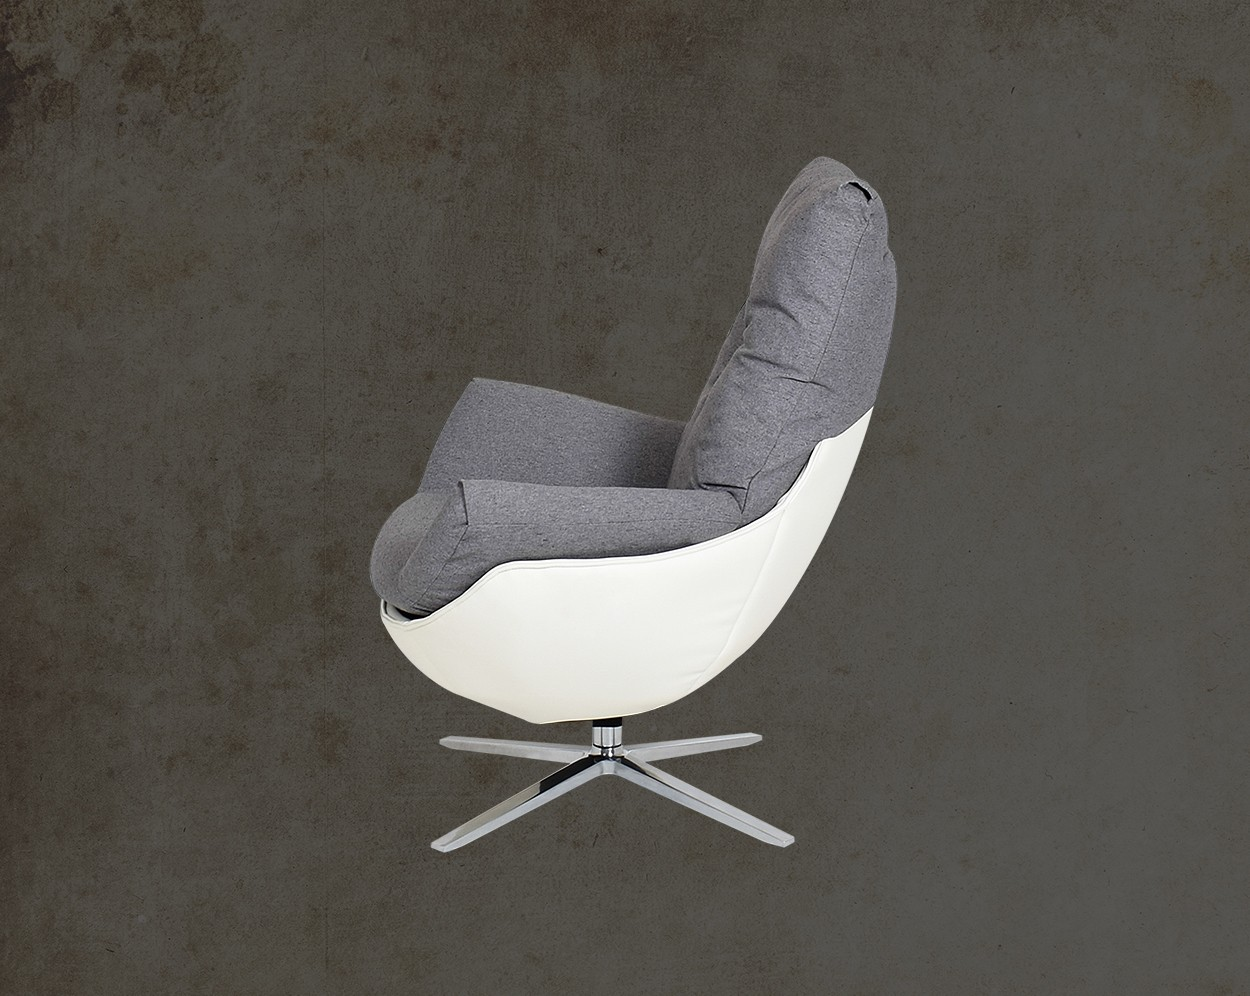 Verlin Leisure Chair Side View